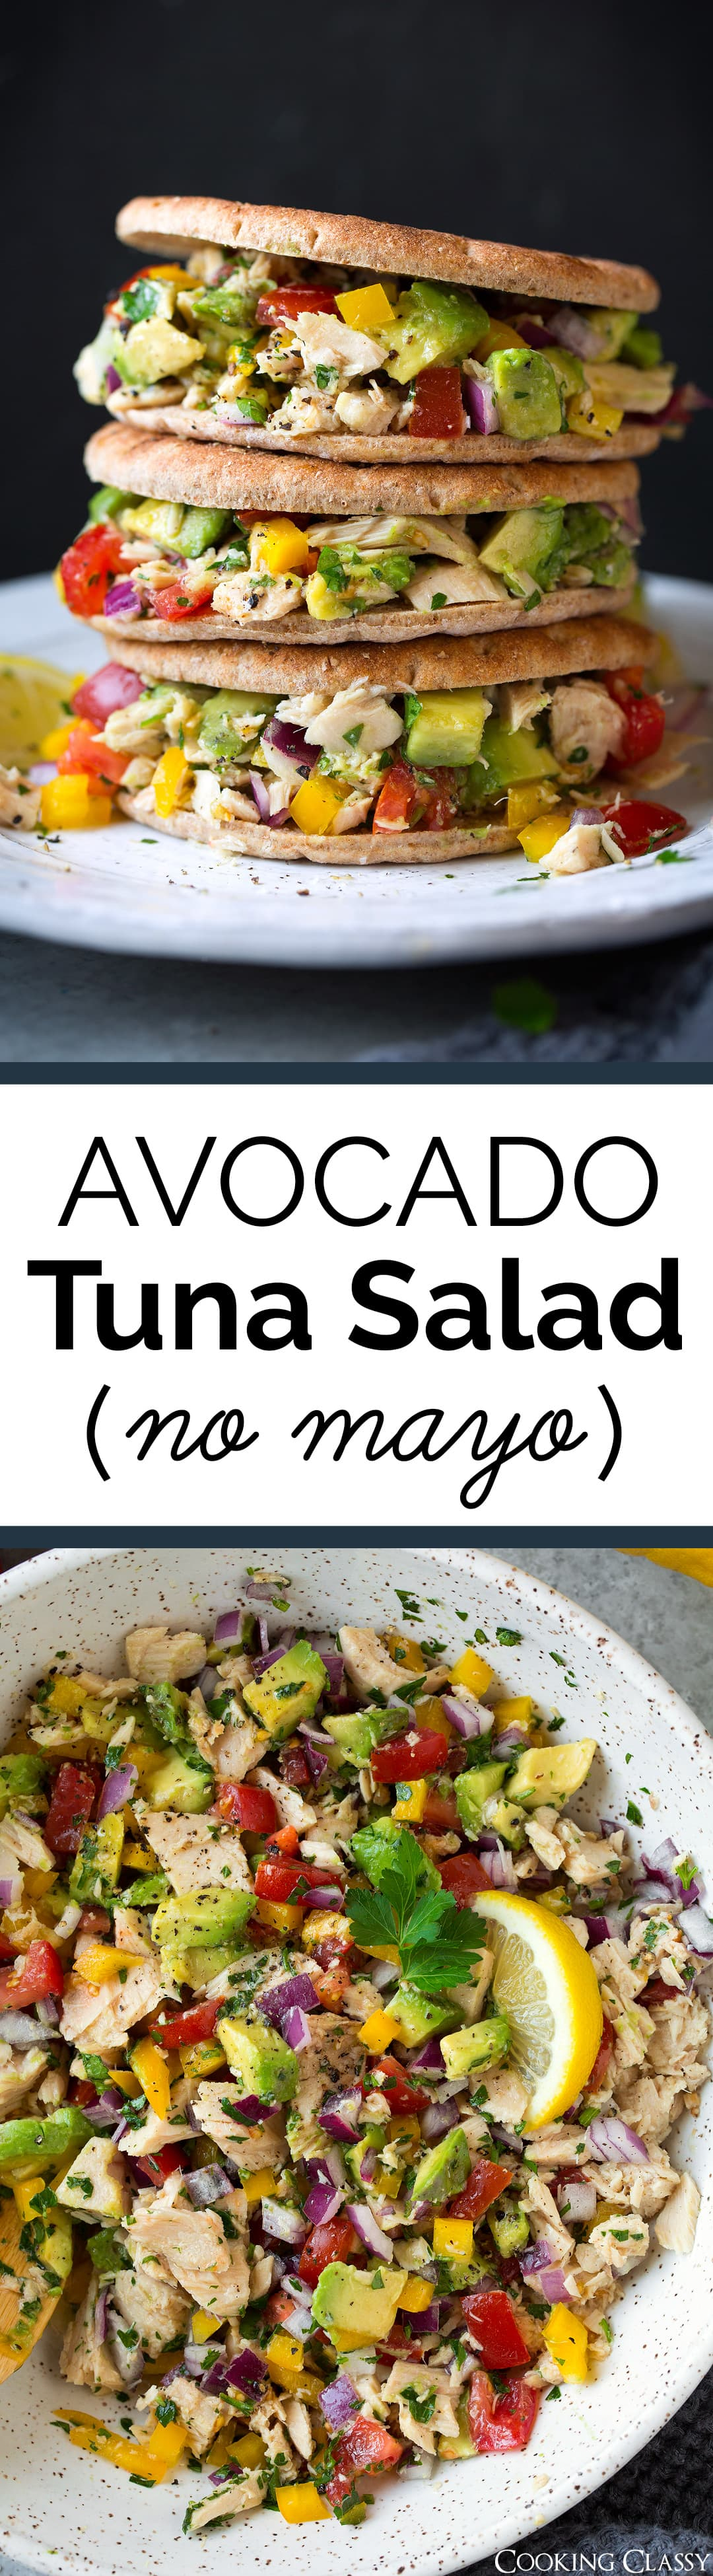 Avocado Tuna Salad - A delicious mayo-free tuna salad made with olive oil. Full of bright flavors, a pretty variety of colors, and a nice blend of textures. Perfect for lunch or a lazy dinner. #avocado #tunasalad #lunch #sandwich #recipe